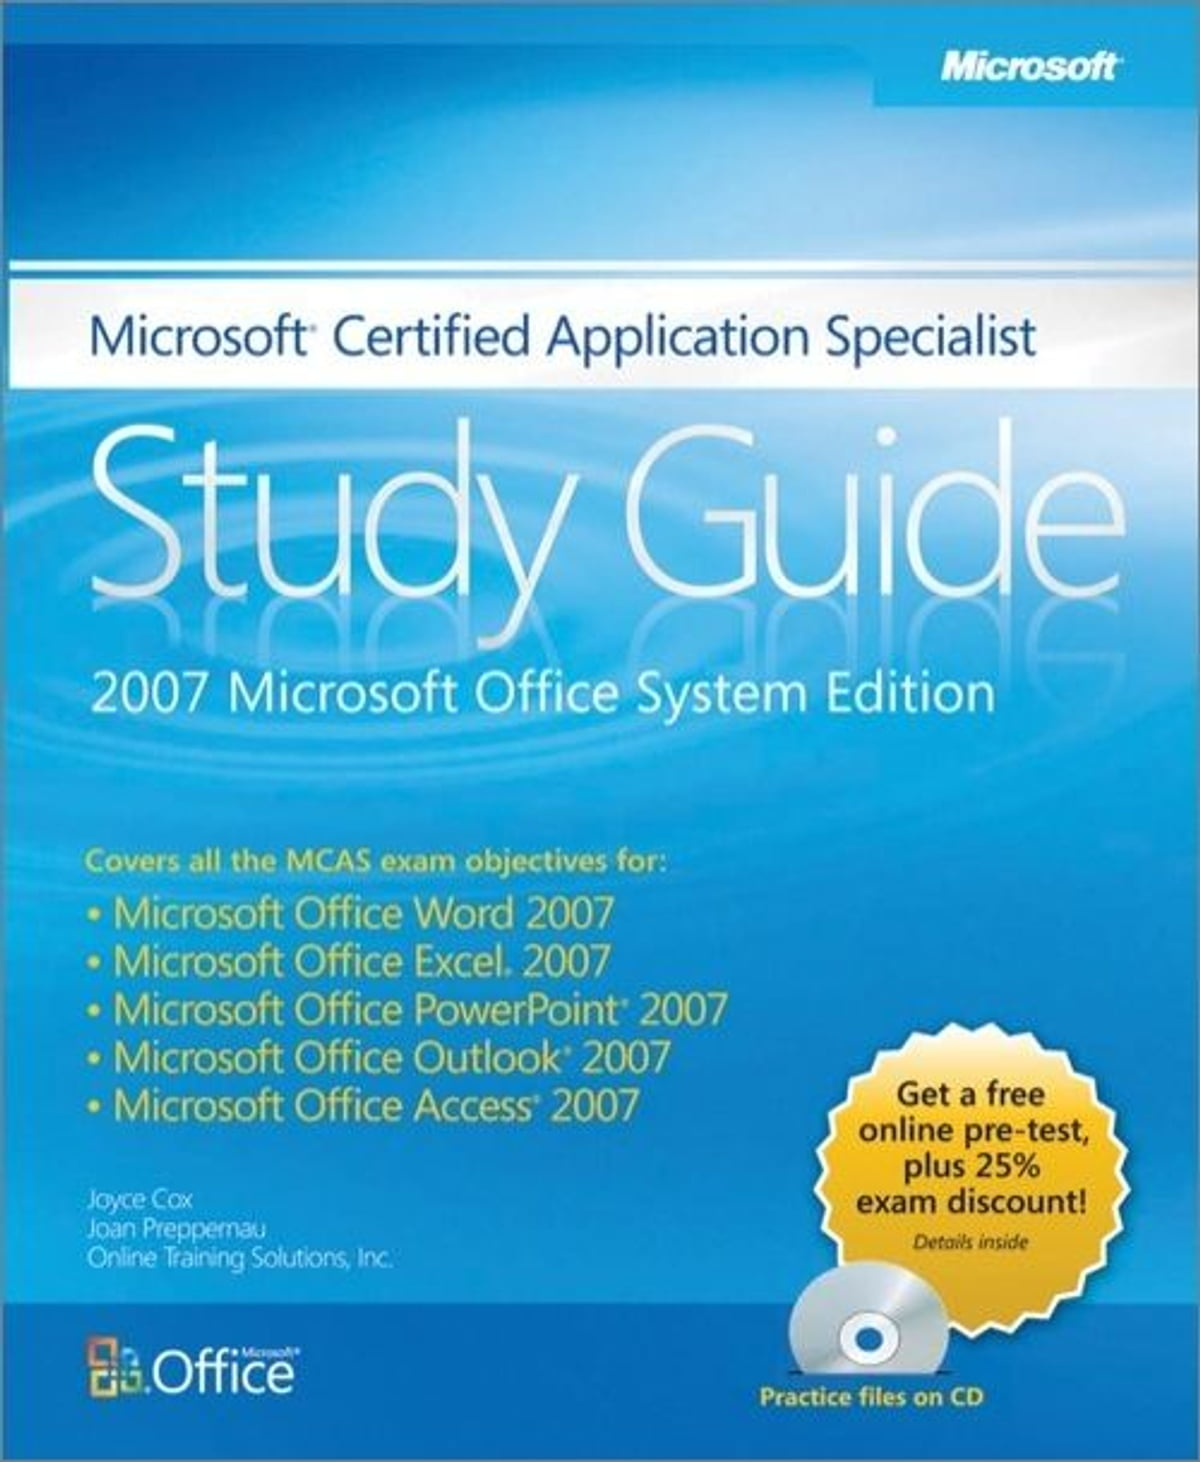 Microsoft Certified Application Specialist Study Guide 2007